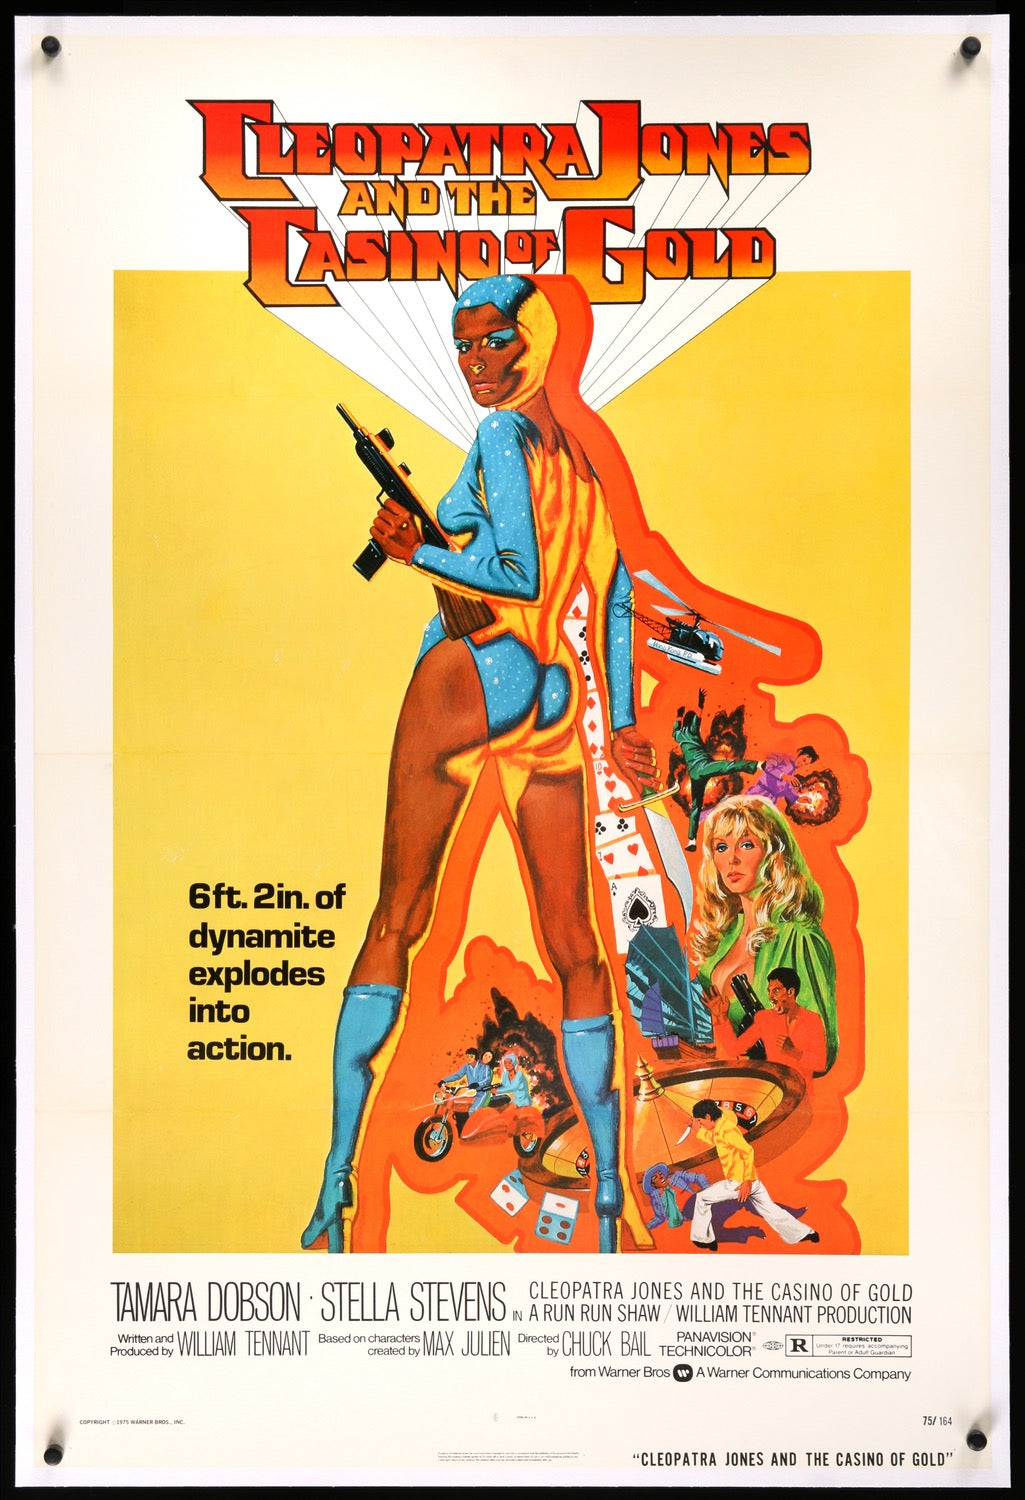 Cleopatra Jones And The Casino Of Gold 1975 One Sheet Movie Poster Original Film Art Vintage Movie Posters